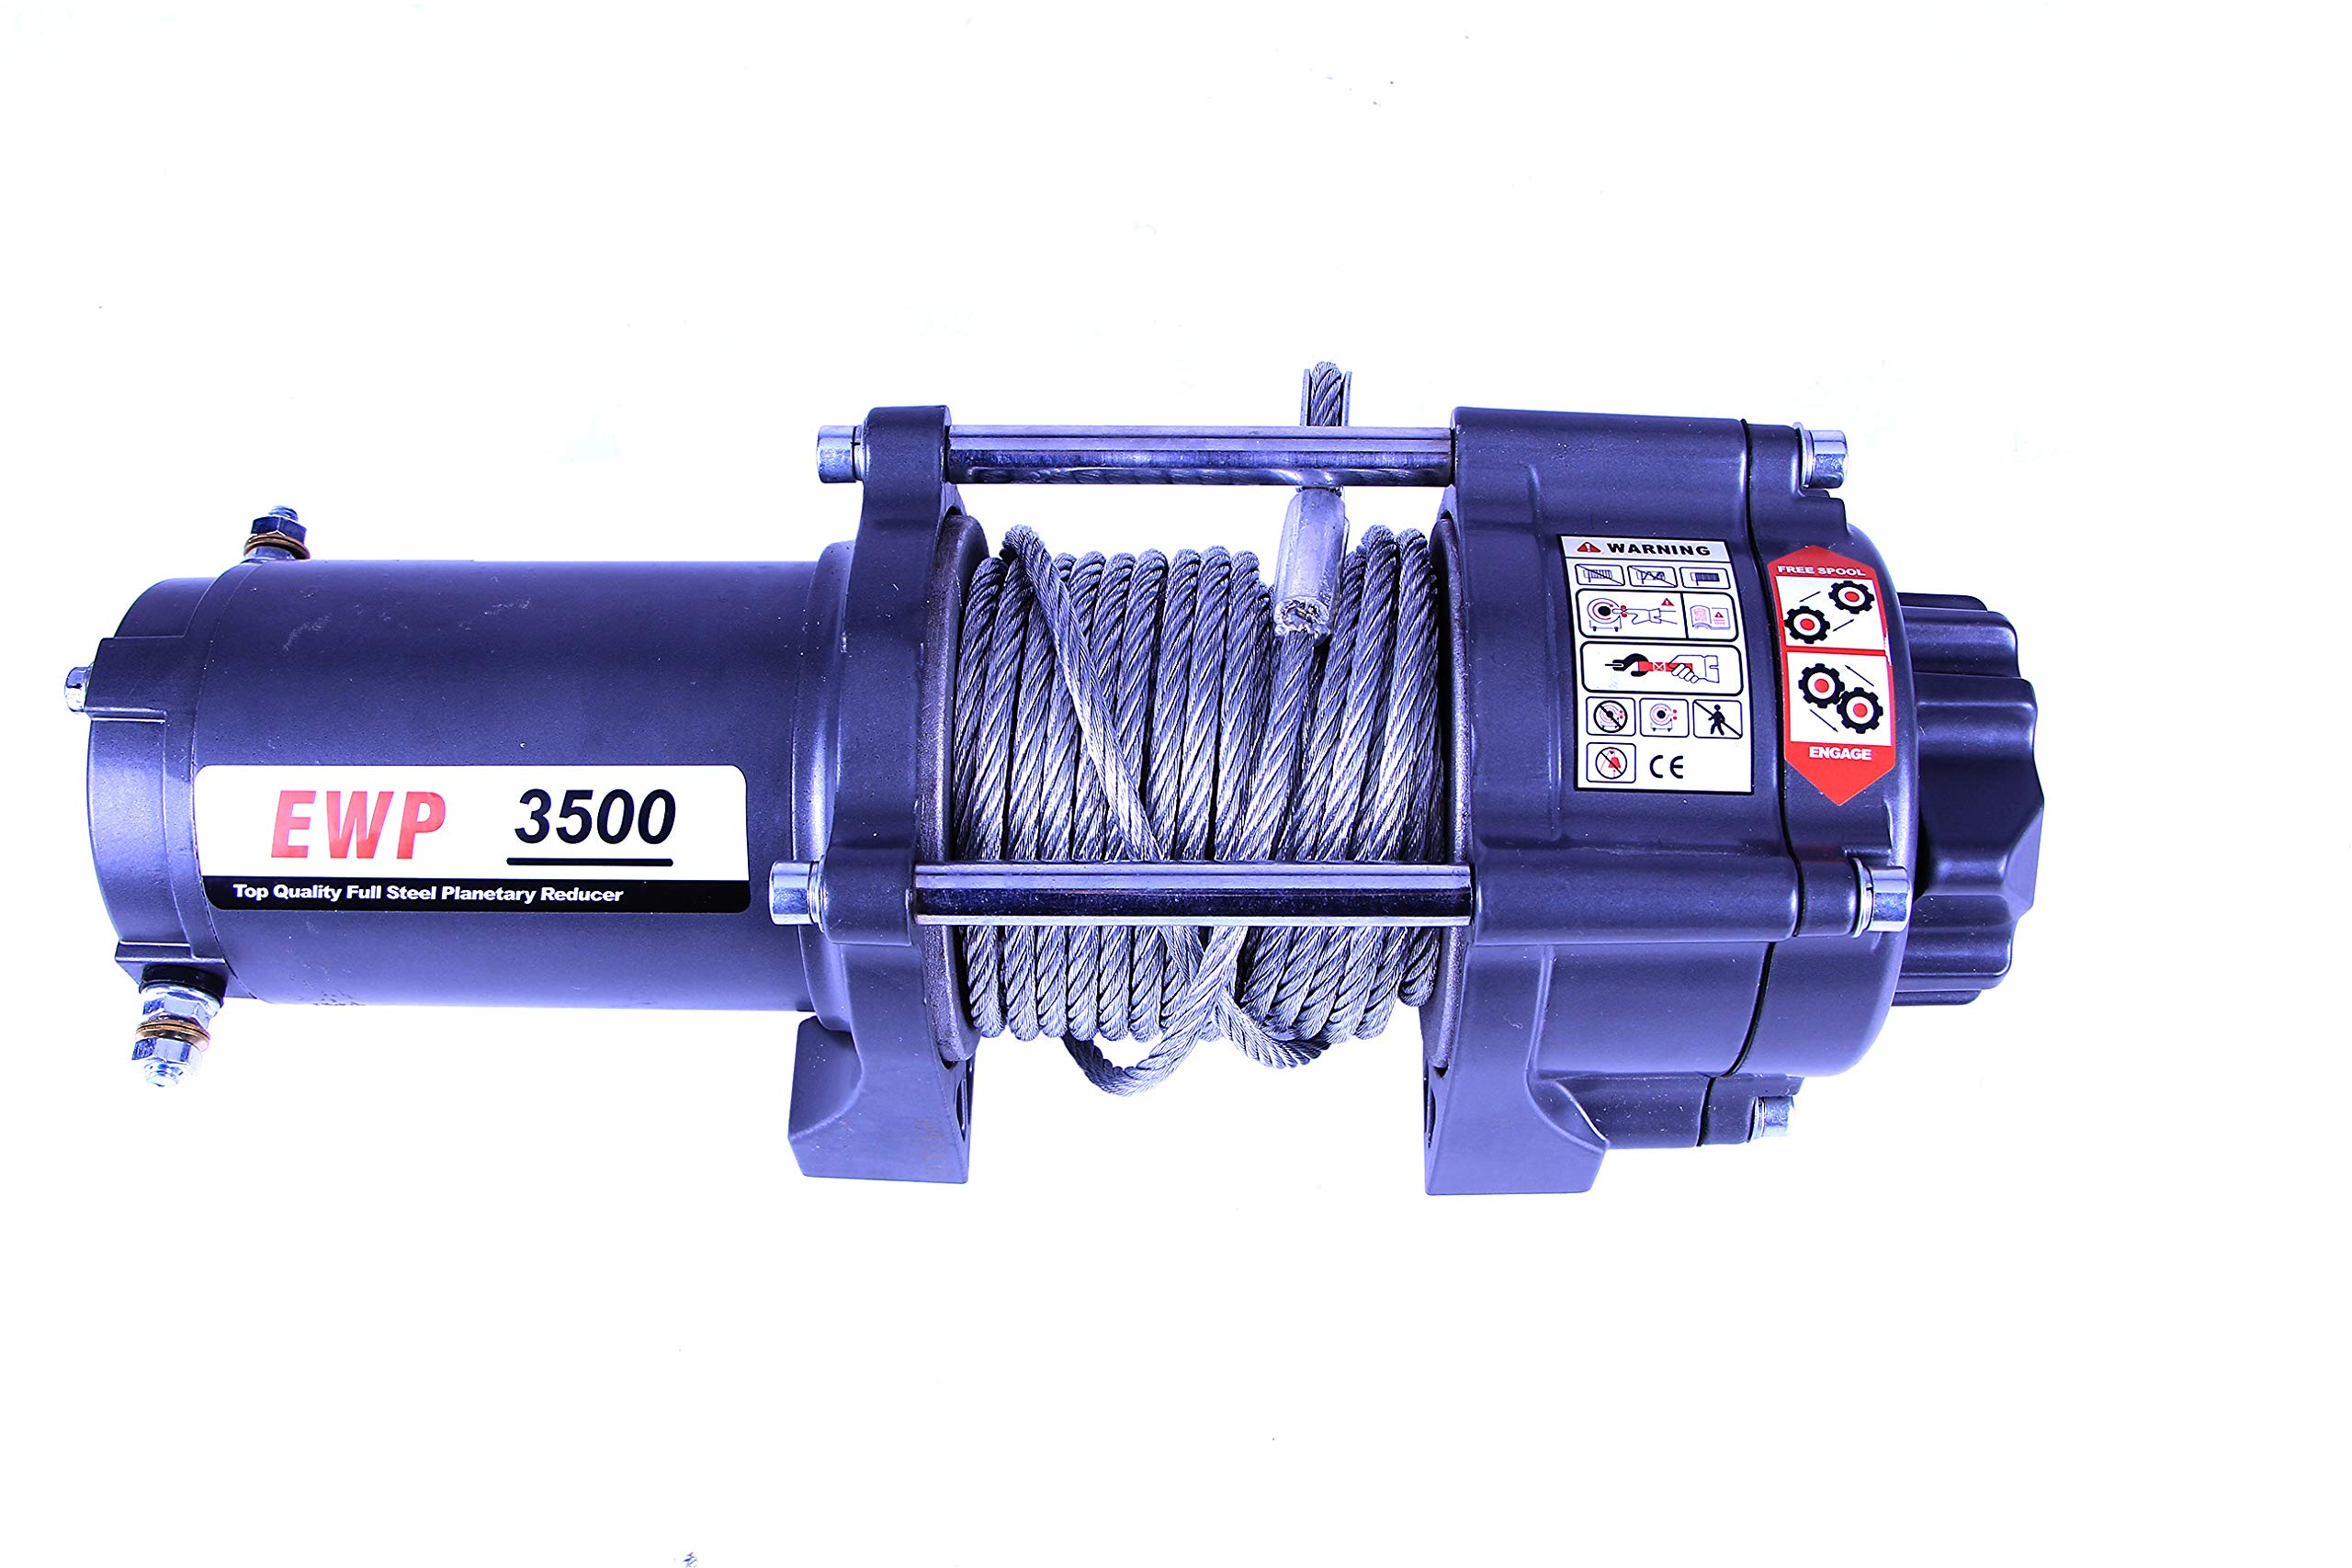 AC-DK 12V 3500lb ATV Winch UTV Winch Electric Winch Set for 4x4 Off Road (3500lb Winch with Cable) by AC-DK (Image #5)